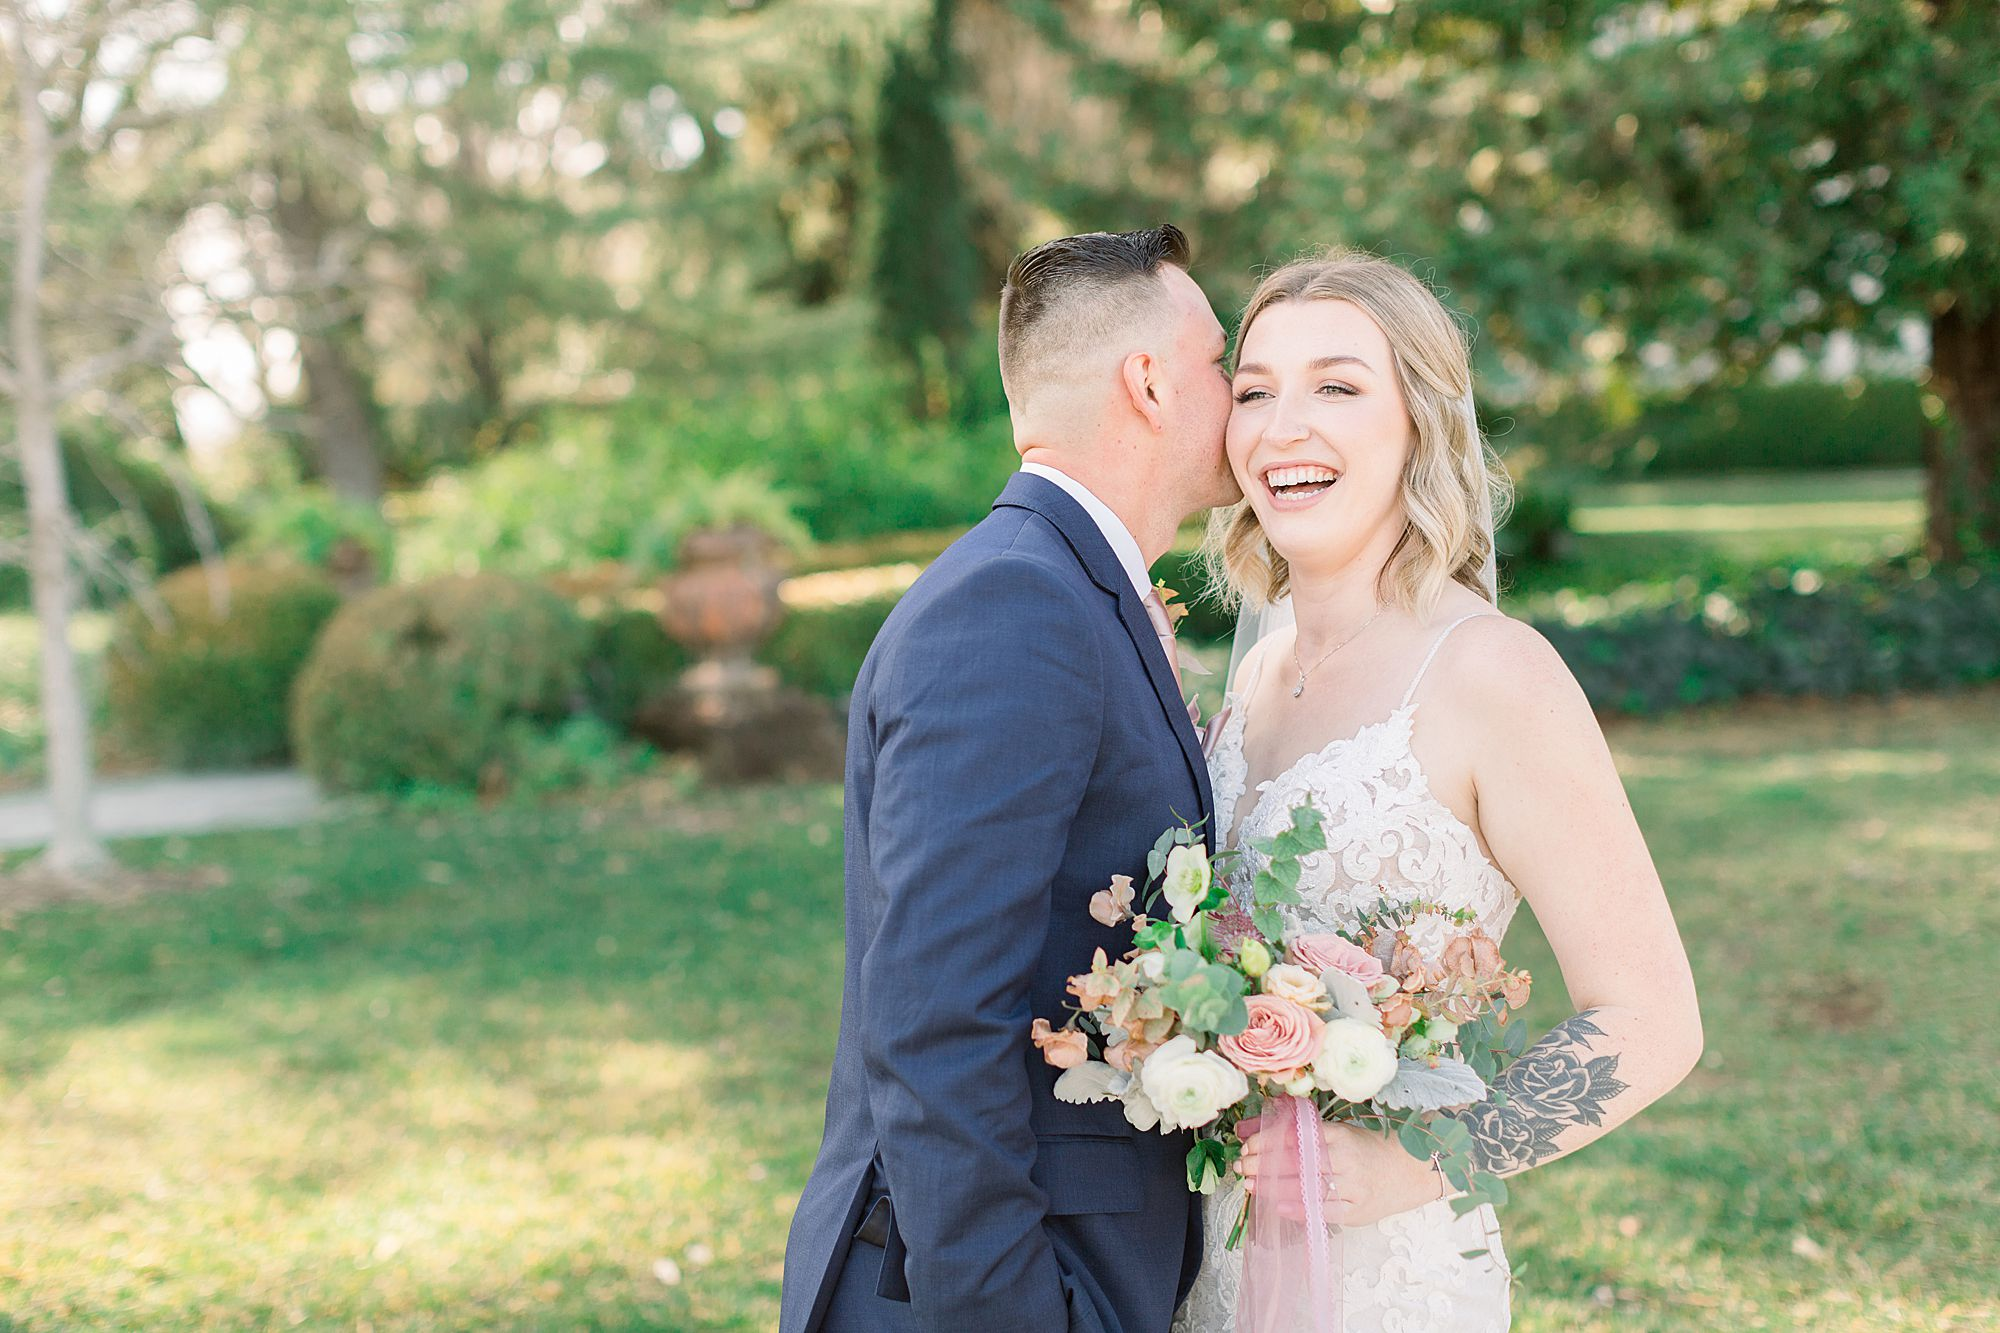 Inn at Park Winters Wedding - Lindsay and Shane - Ashley Baumgartner - Park Winters Wedding Photographer - Sacramento Wedding Photographer_0018.jpg